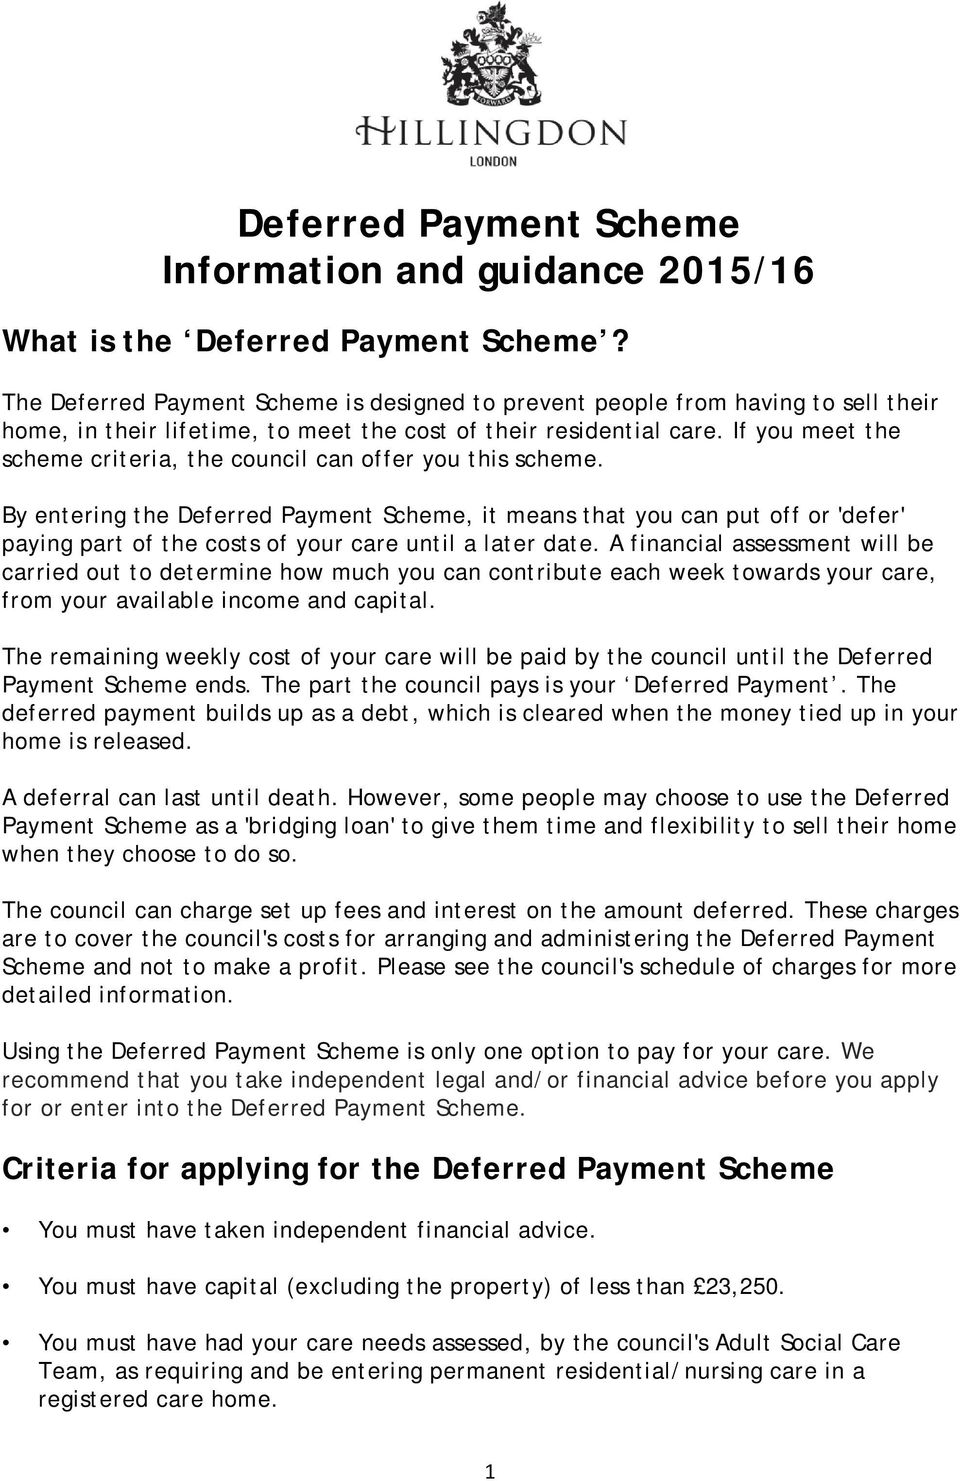 If you meet the scheme criteria, the council can offer you this scheme.